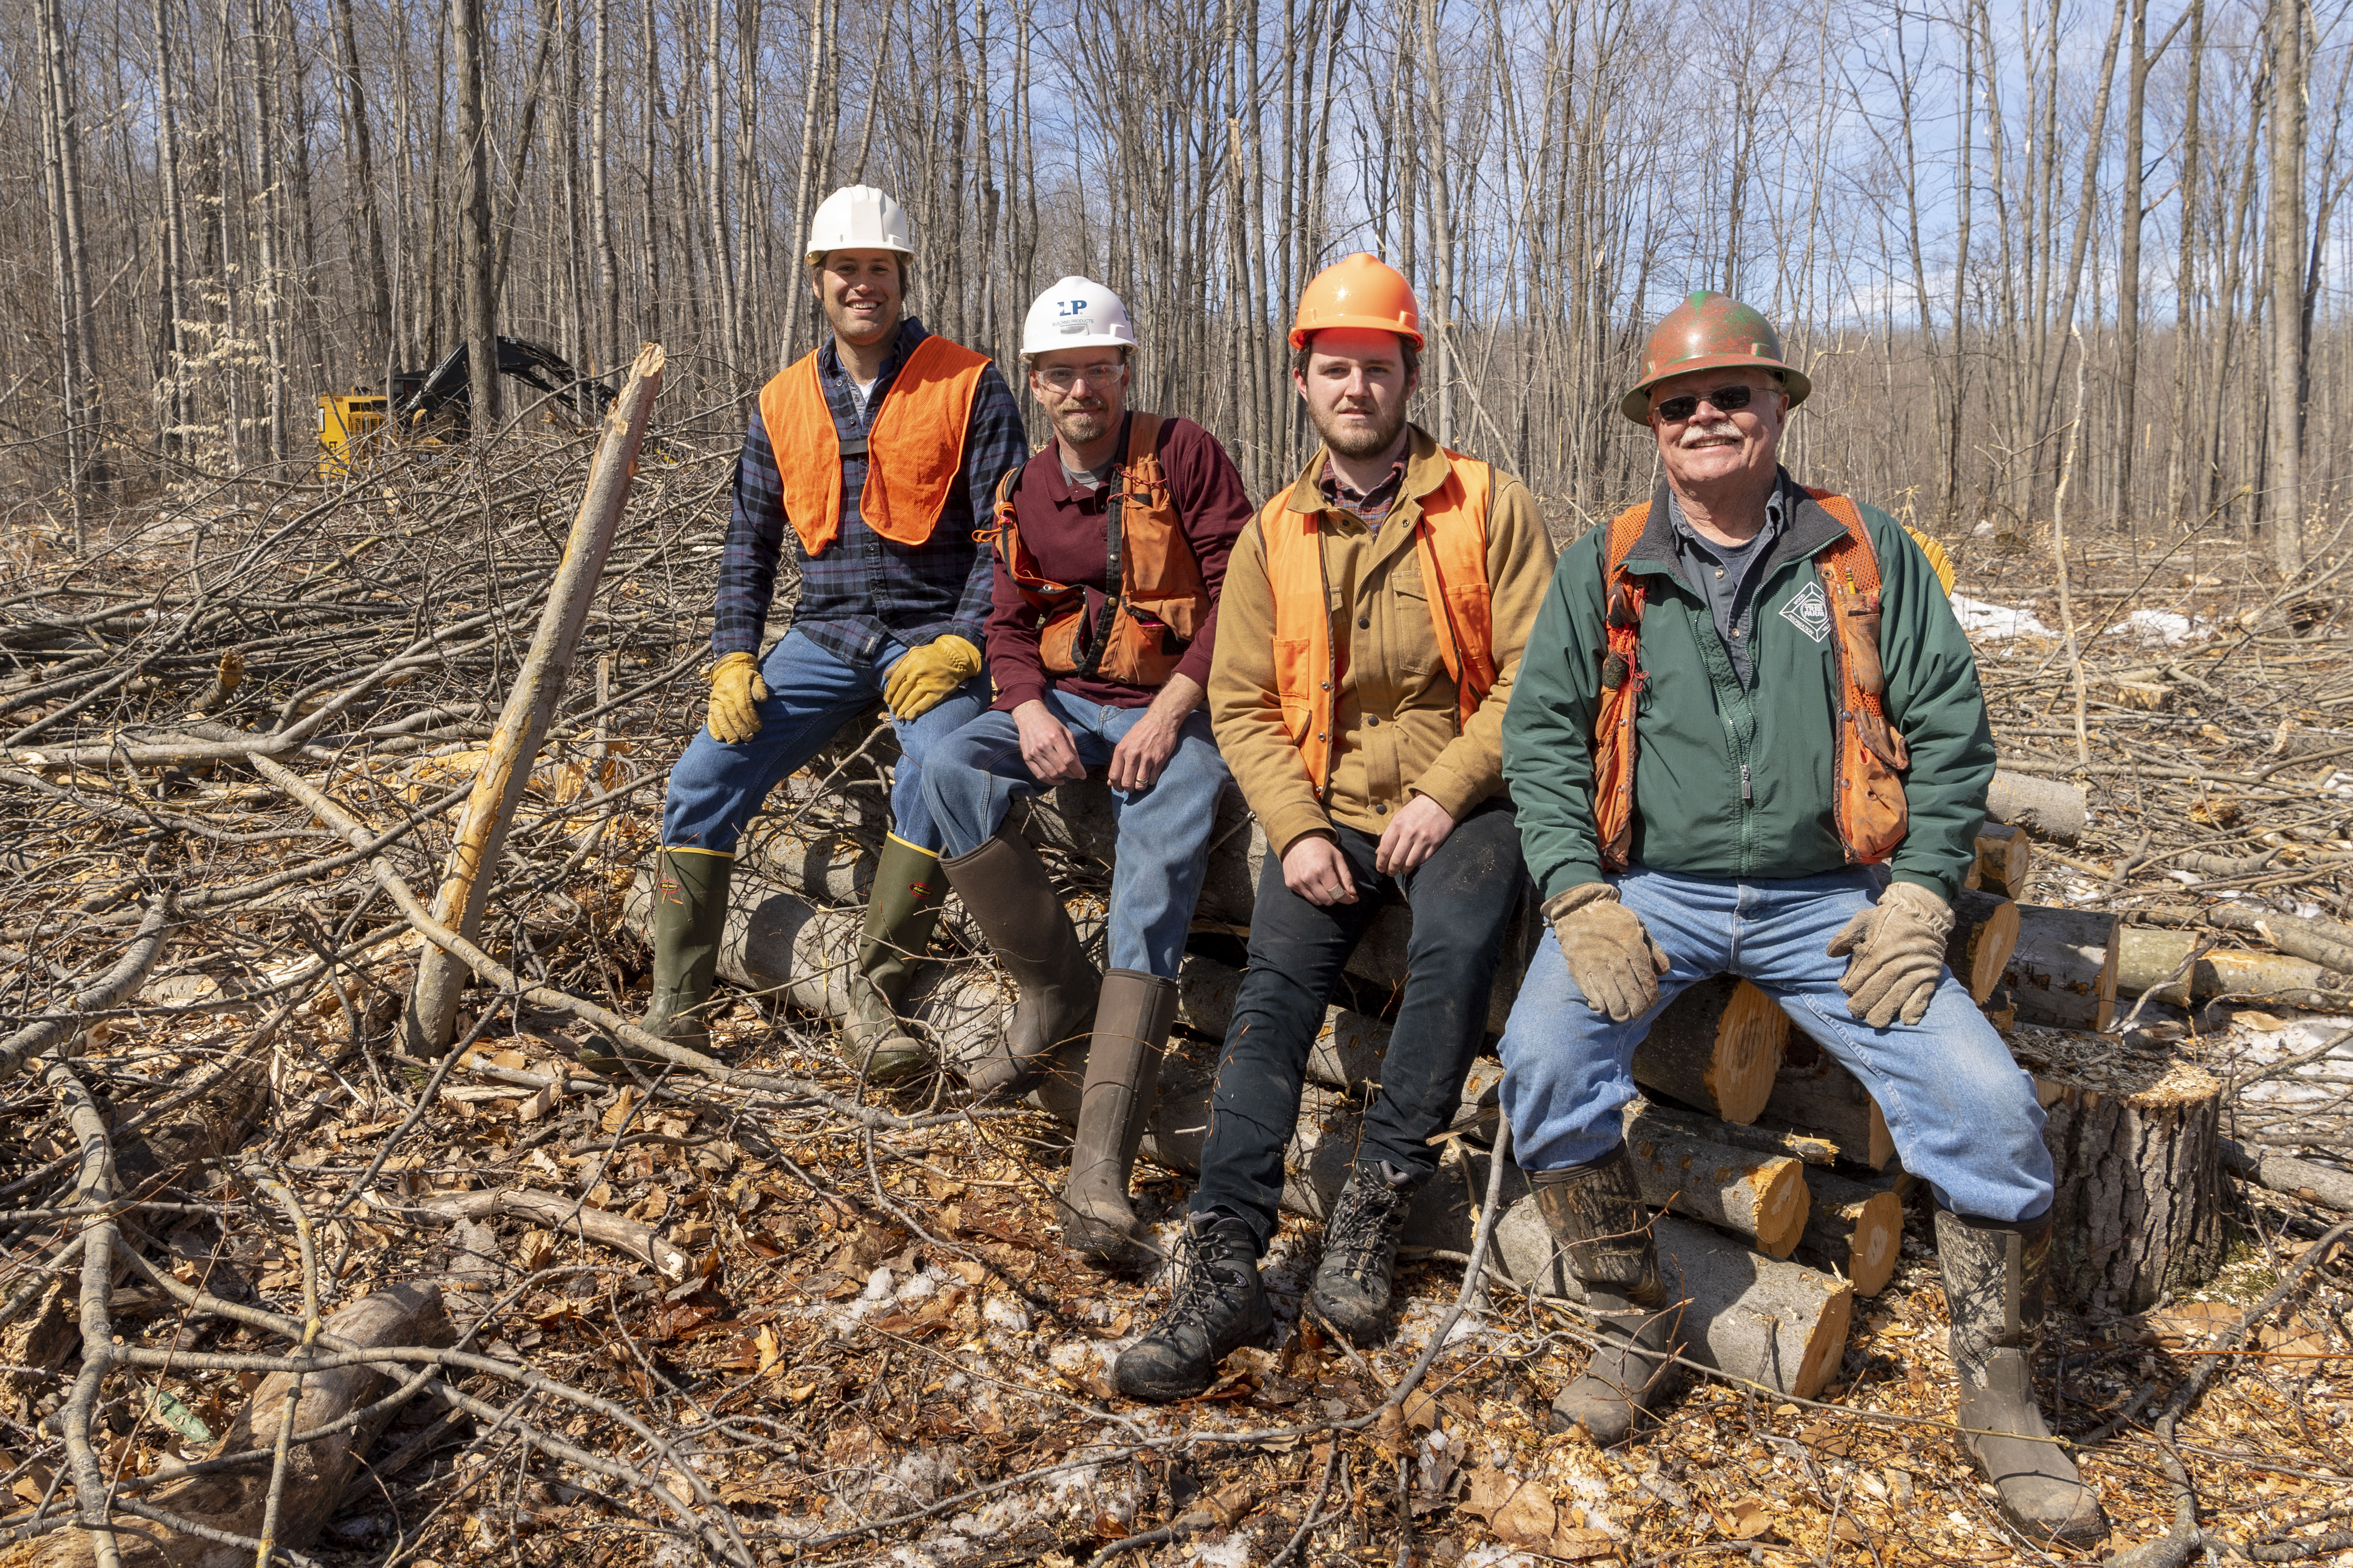 From left, U-M ecologist and biogeochemist Luke Nave; Travis Kangas, a resource manager at Louisiana-Pacific Corporation; U-M research specialist John Den Uyl; and Dean Reid, the consulting forester who set up the timber sale. Image credit: Roger Hart, Michigan Photography